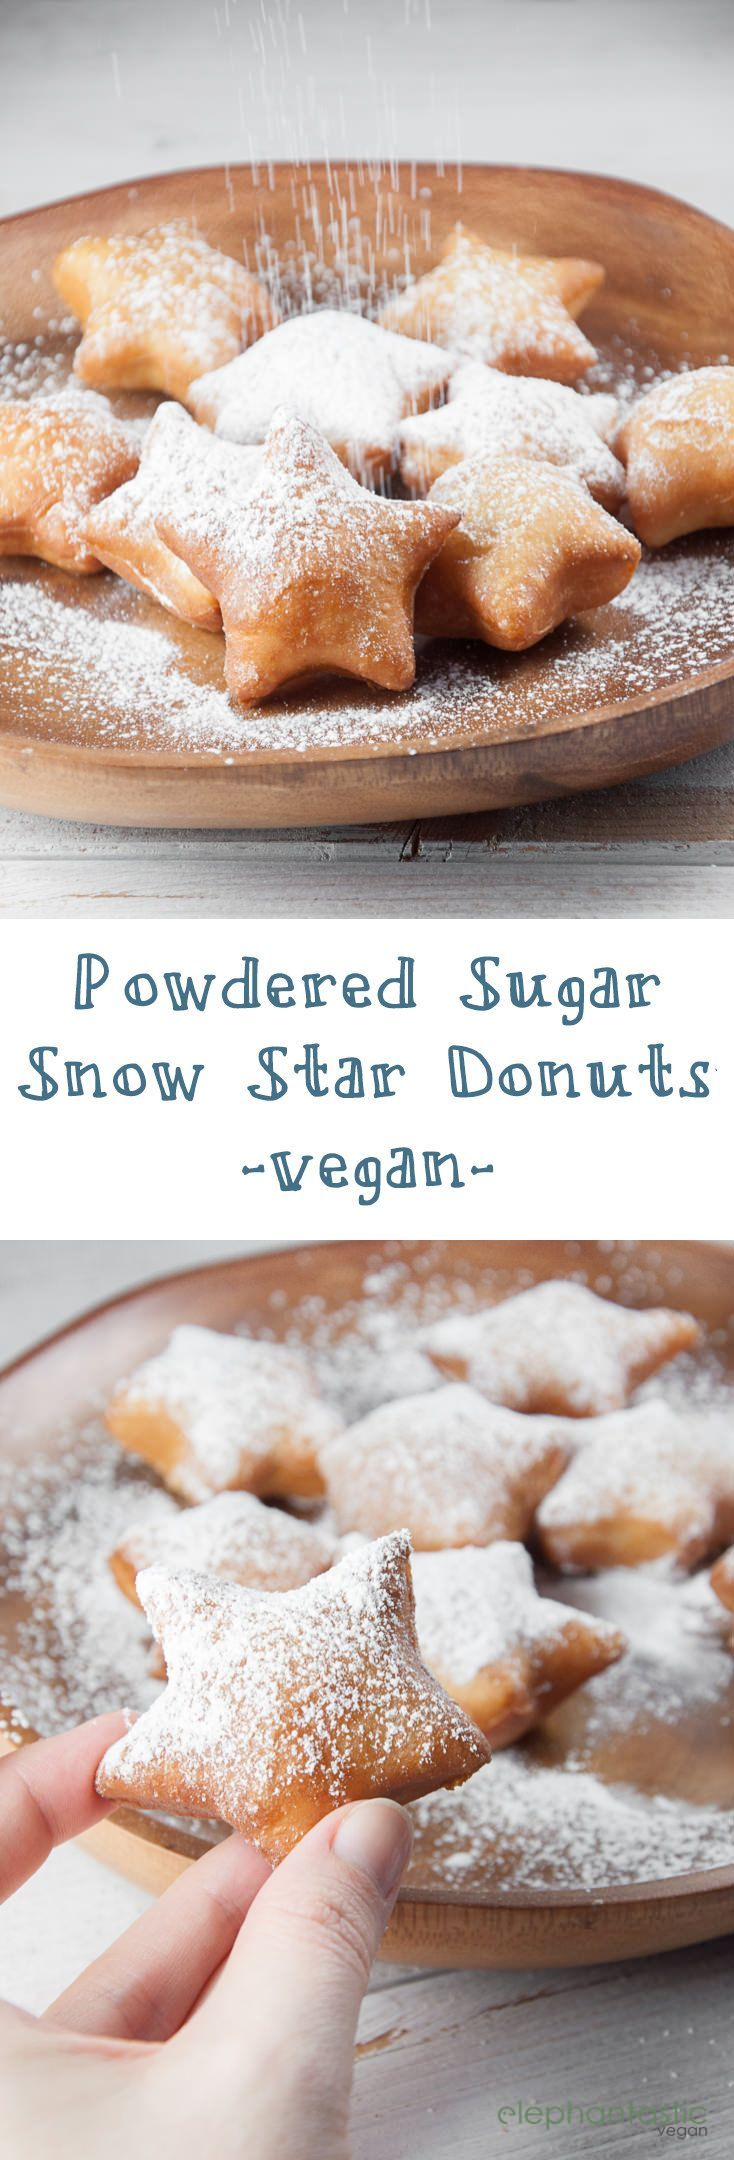 Powdered Sugar Snow Star Donuts (vegan) | http://ElephantasticVegan.com